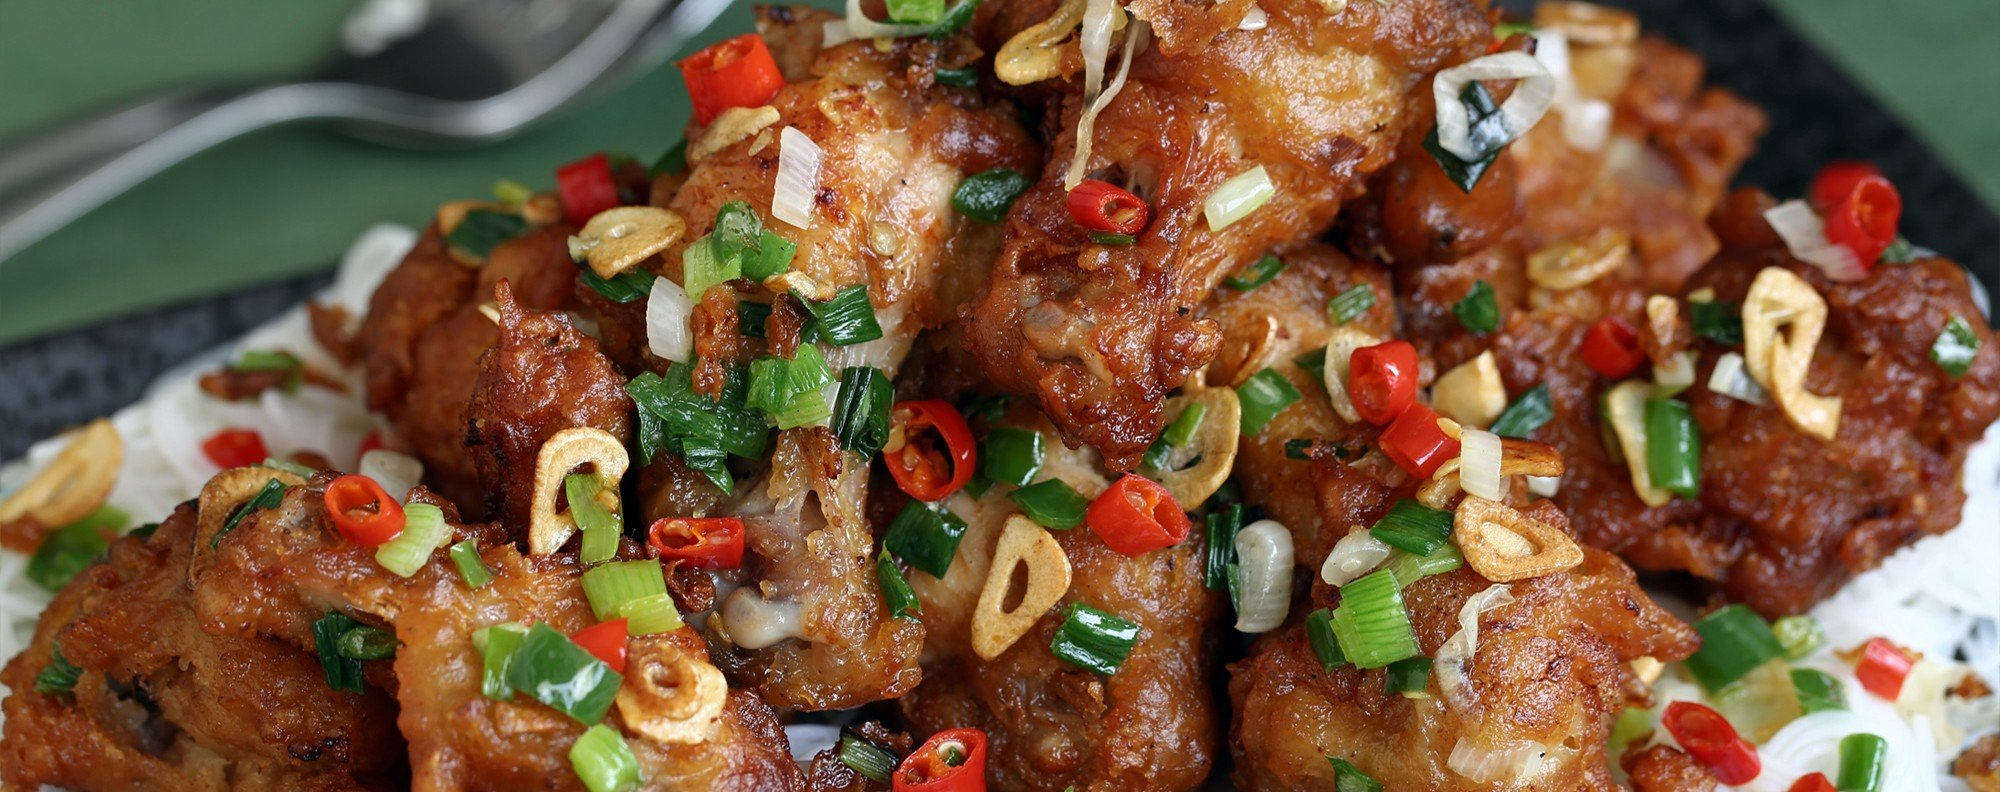 Susan jungs recipes for chicken wings finger lickin good post susan jungs recipes for chicken wings finger lickin good post magazine south china morning post forumfinder Choice Image